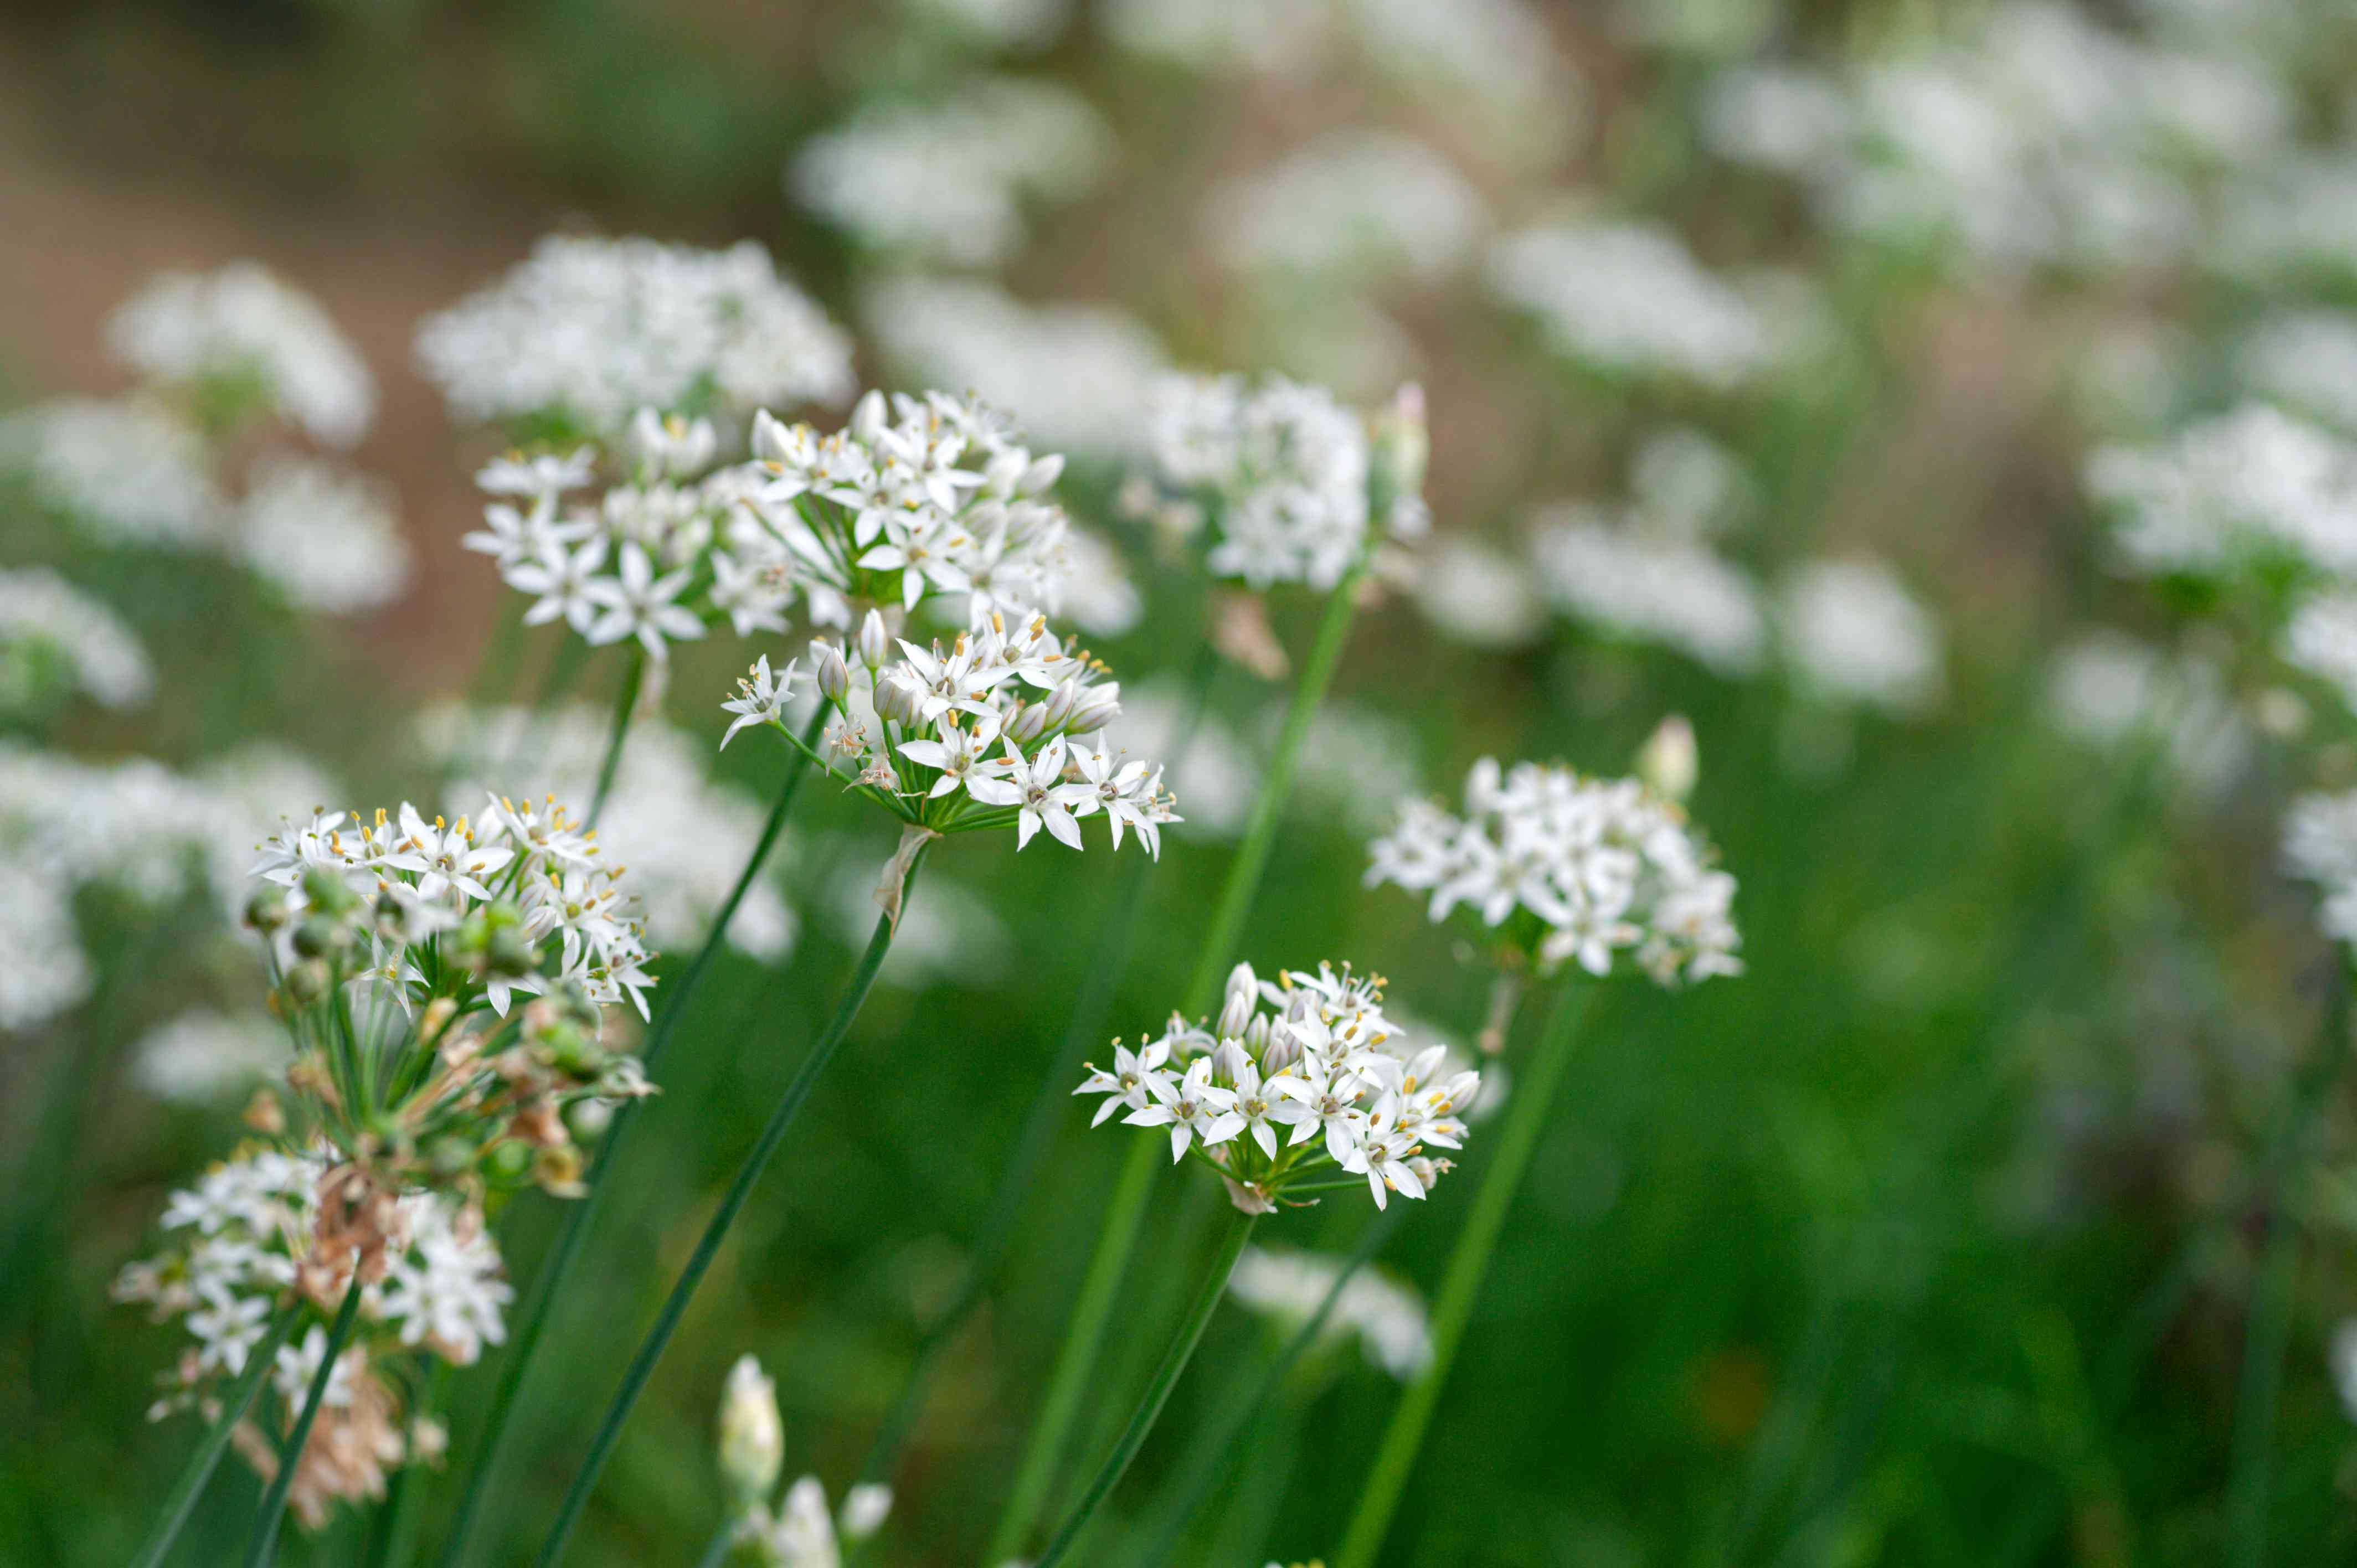 Garlic chives plant with small white star-shaped flowers clustered on ends of thin stems closeup